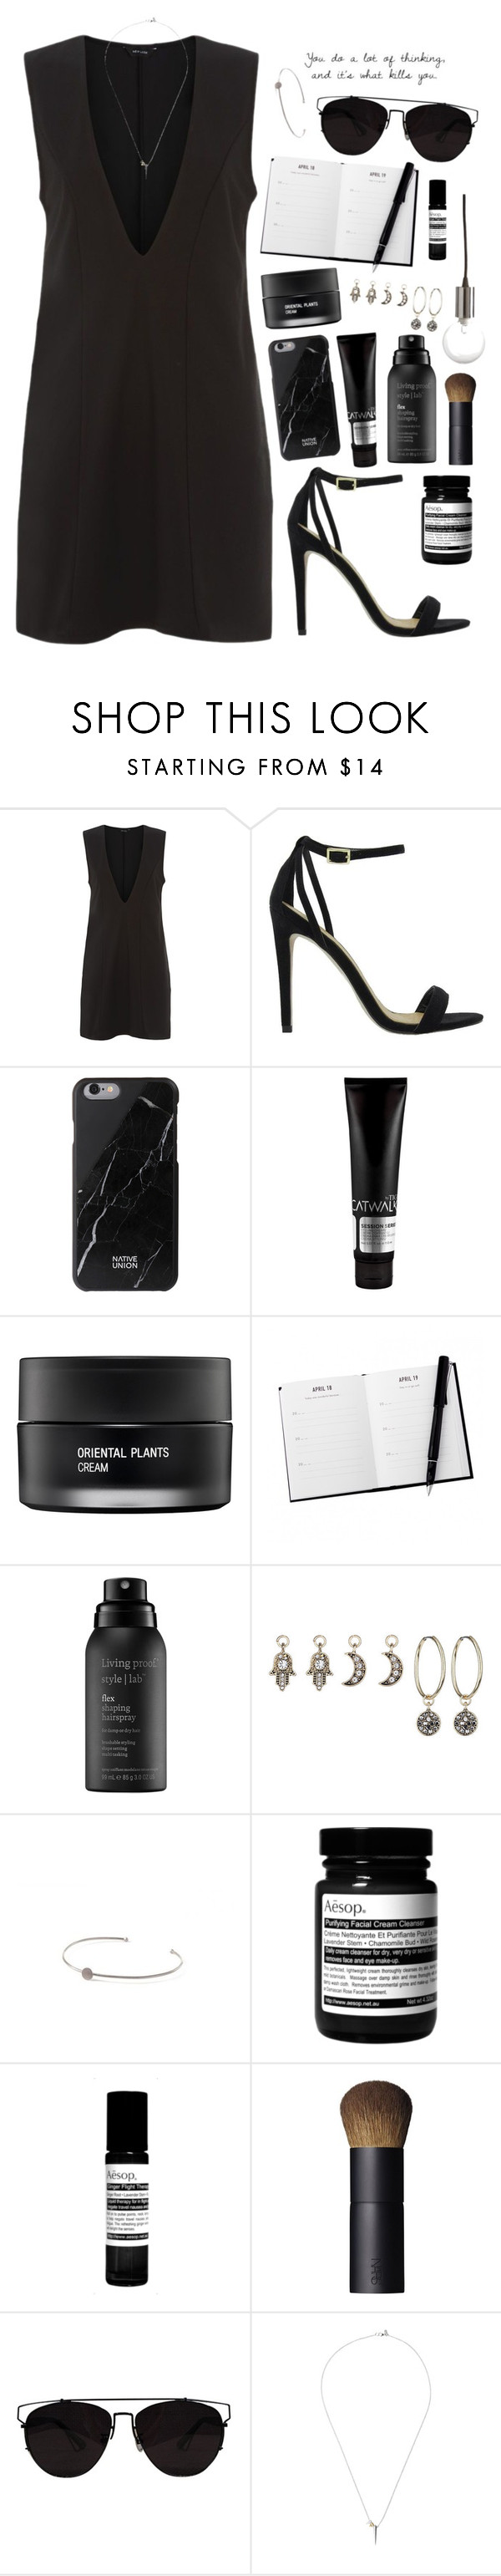 """""""Geen titel #243"""" by sophievalk ❤ liked on Polyvore featuring ASOS, Native Union, TIGI, Koh Gen Do, Living Proof, Topshop, Pernille Corydon, Aesop, NARS Cosmetics and Retrò"""